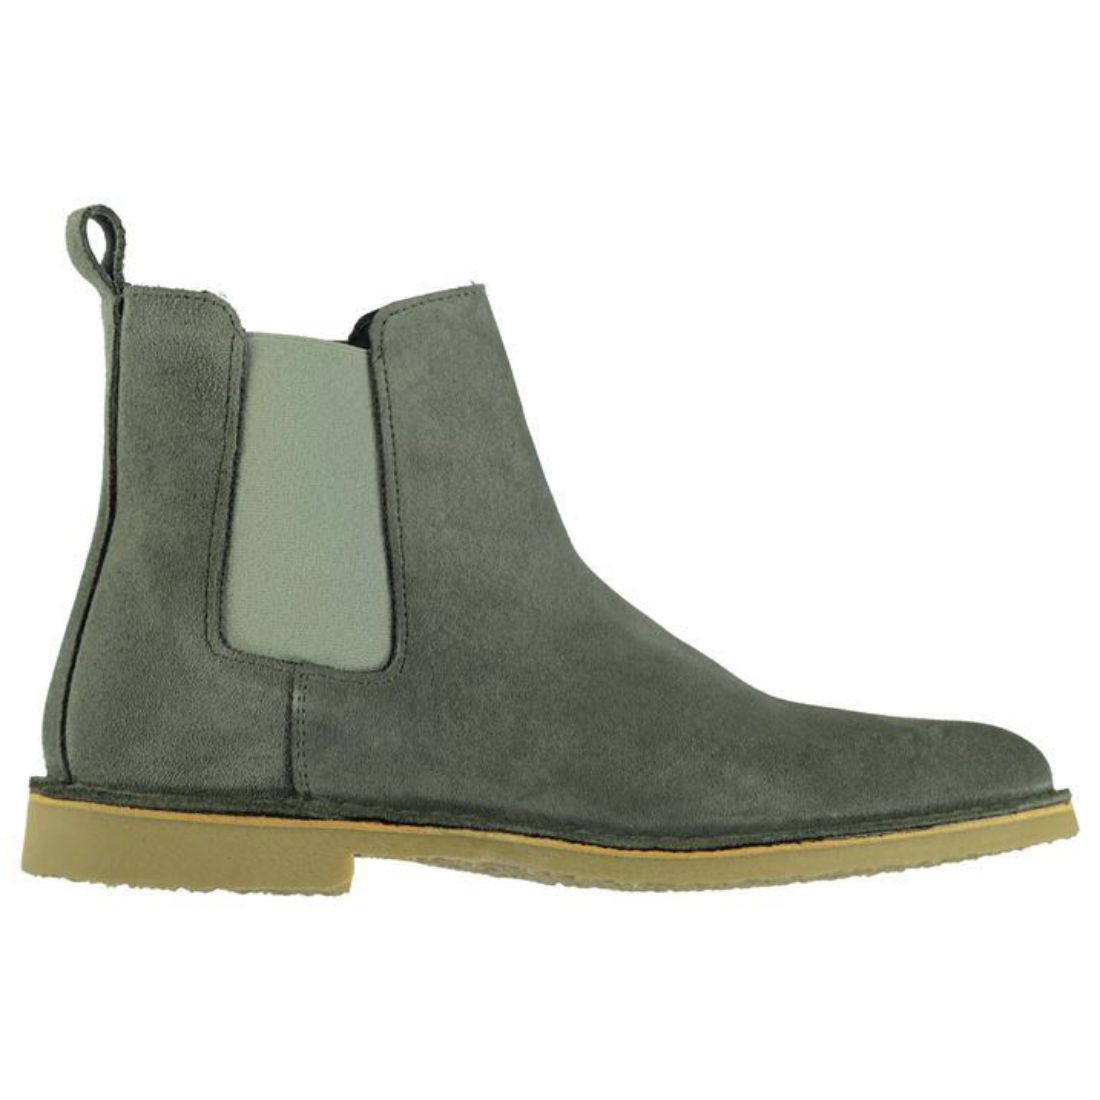 b096201b9842 Firetrap Mens Gents Francis Chelsea Boots Stretchy Panels Shoes ...